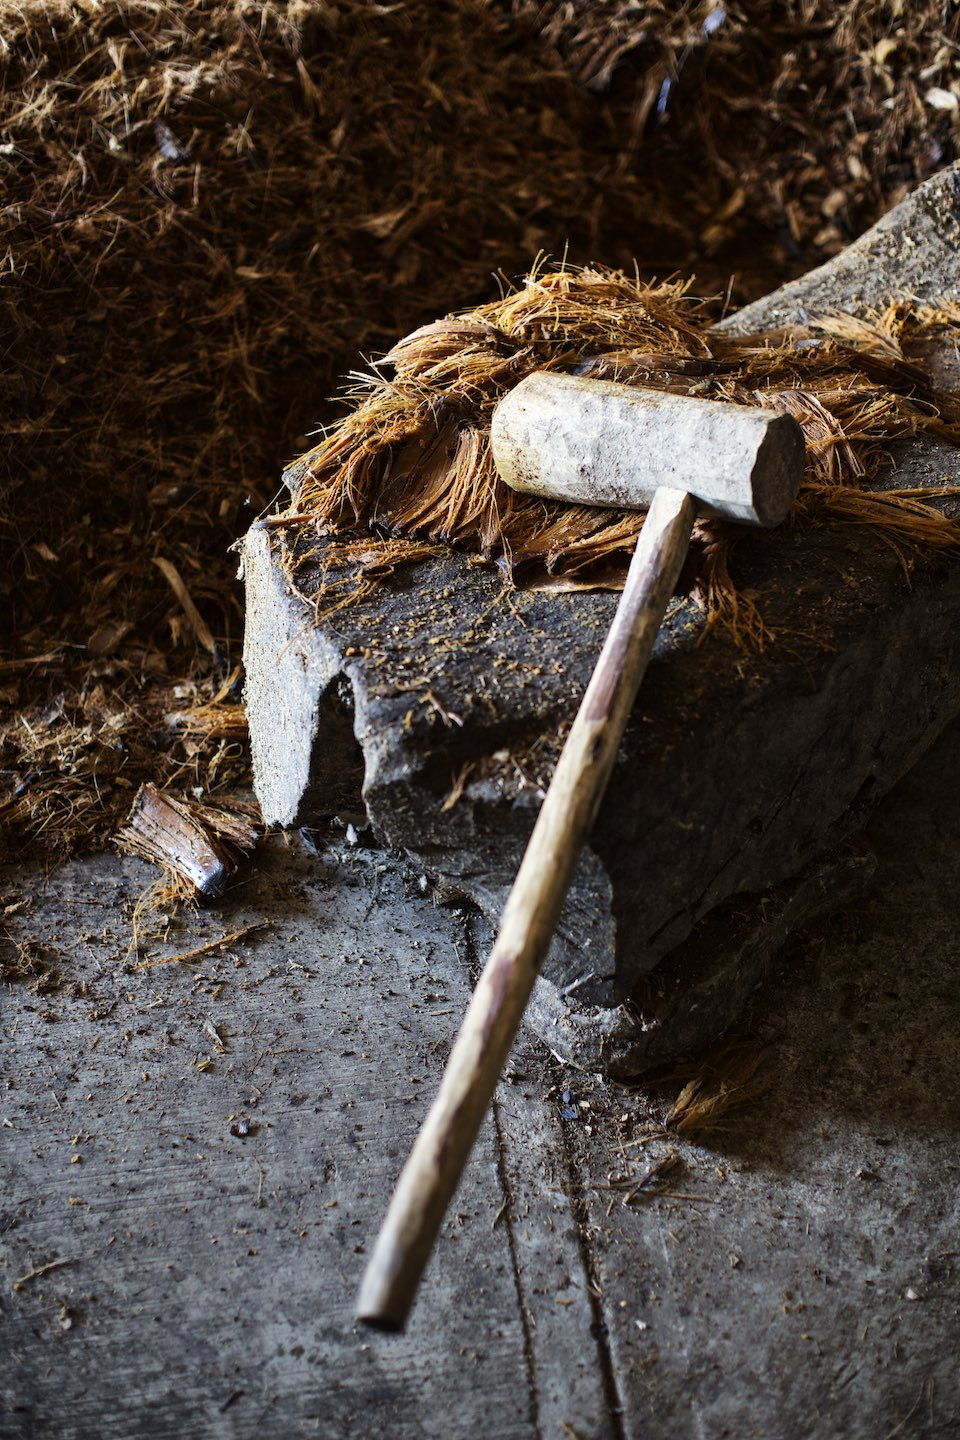 Wooden mallet and agave fibers during mezcal production.